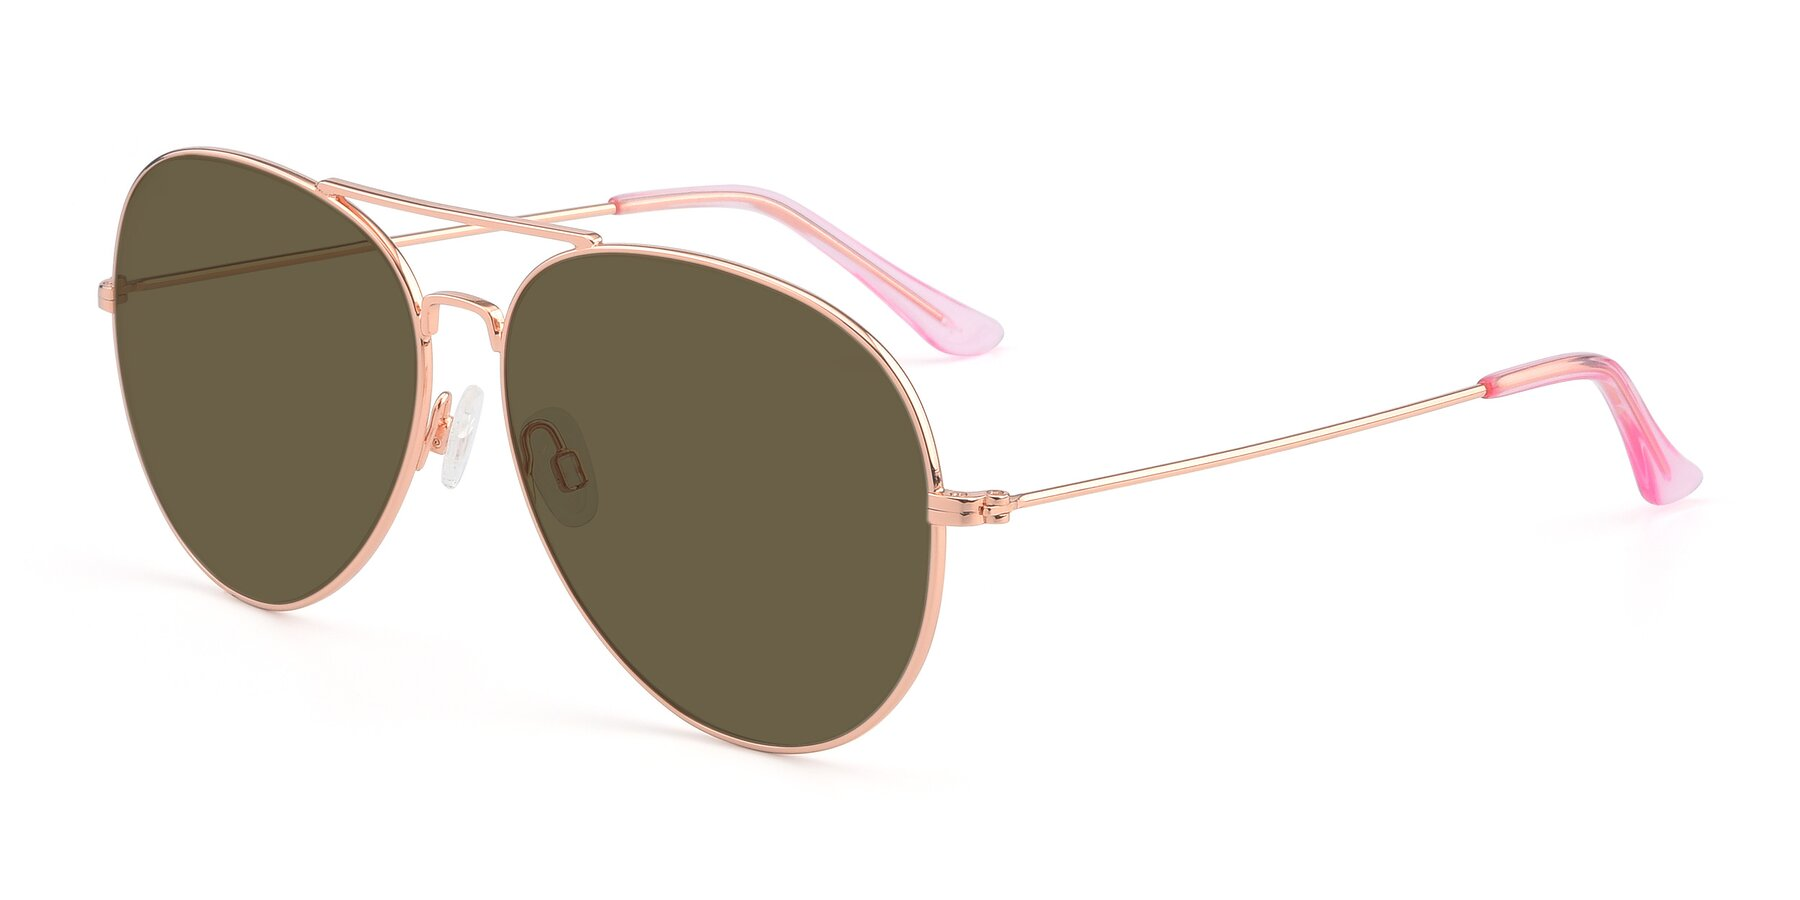 Angle of Paradise in Rose Glod with Brown Polarized Lenses